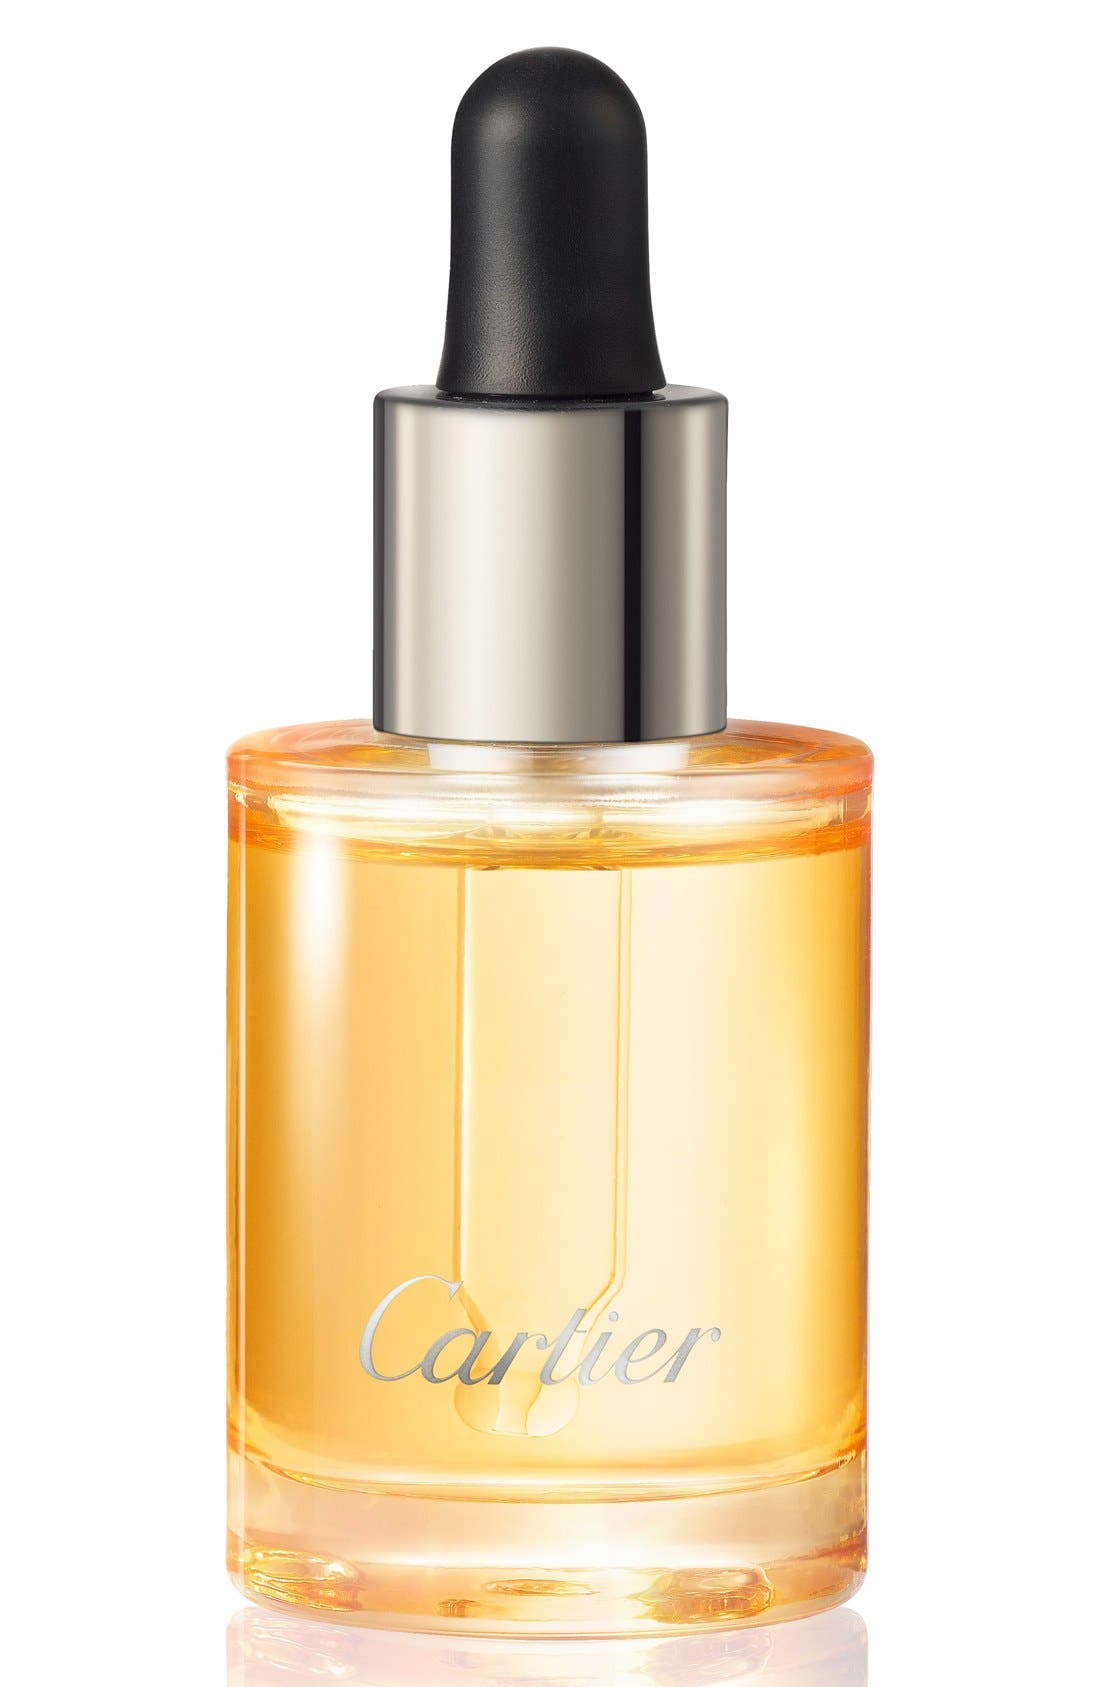 What it is: A perfuming face and beard oil that softens skin, detangles hair and provides a neat look, immediately bringing comfort and smoothness. Fragrance story: To break away from any known sensations, that is the power of the masculine scent of L\\\'Envol de Cartier. A nectar with guaiac wood and honey notes, elevated with a vaporous musk. Style: Woody, fresh. Notes:- Top: honey accord- Middle: musk- Base: guaiac wood, patchouli. Style